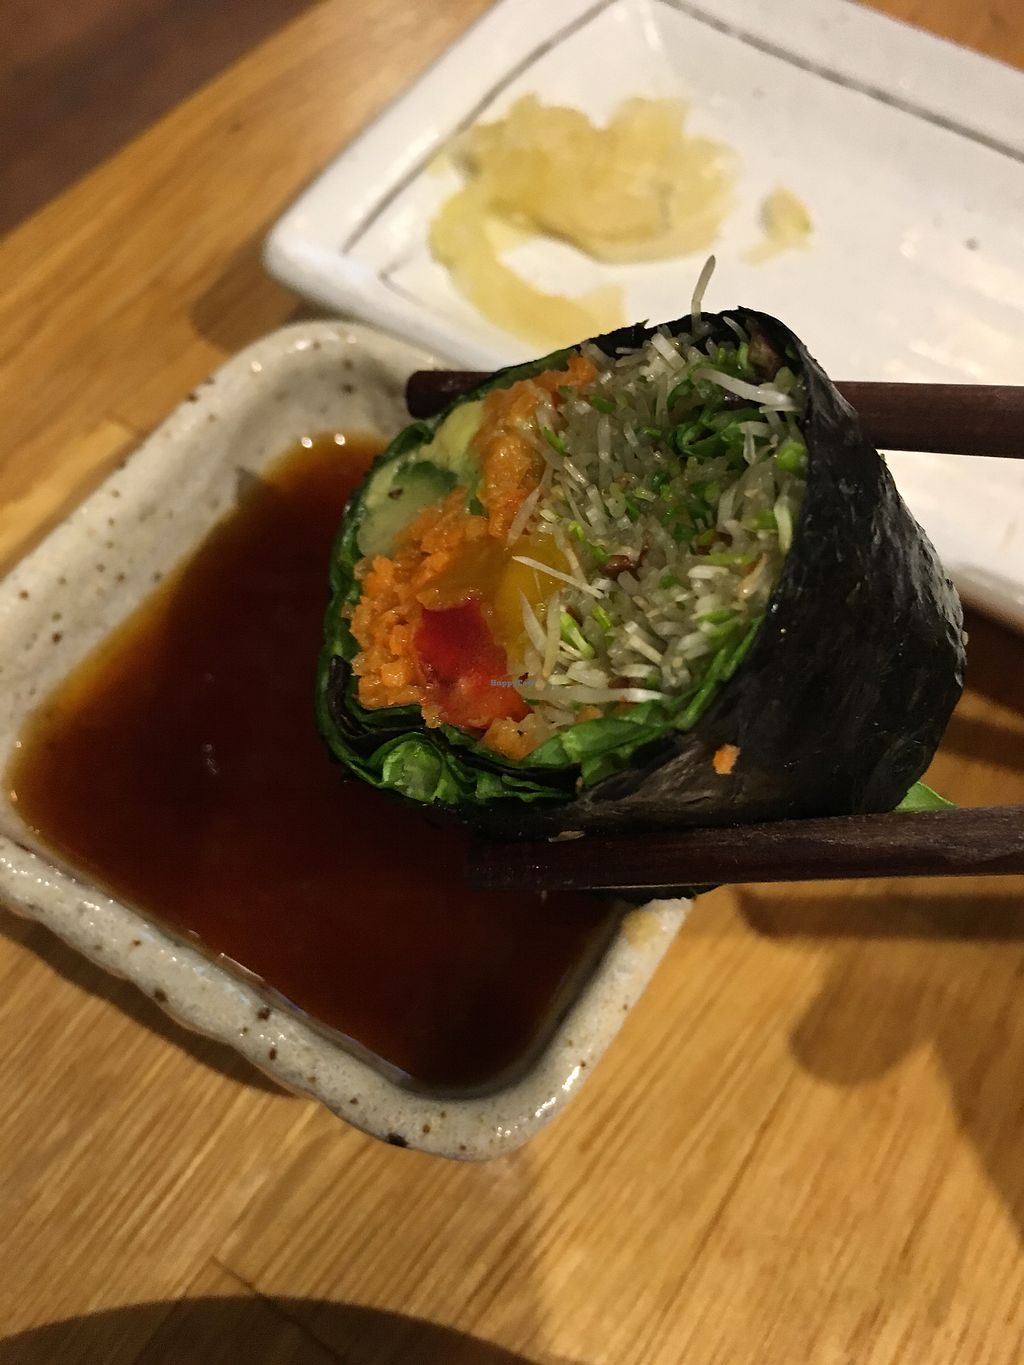 """Photo of Shizenya - Downtown  by <a href=""""/members/profile/Siup"""">Siup</a> <br/>Vegetables rolls with ginger sauce  <br/> March 21, 2018  - <a href='/contact/abuse/image/87440/373538'>Report</a>"""